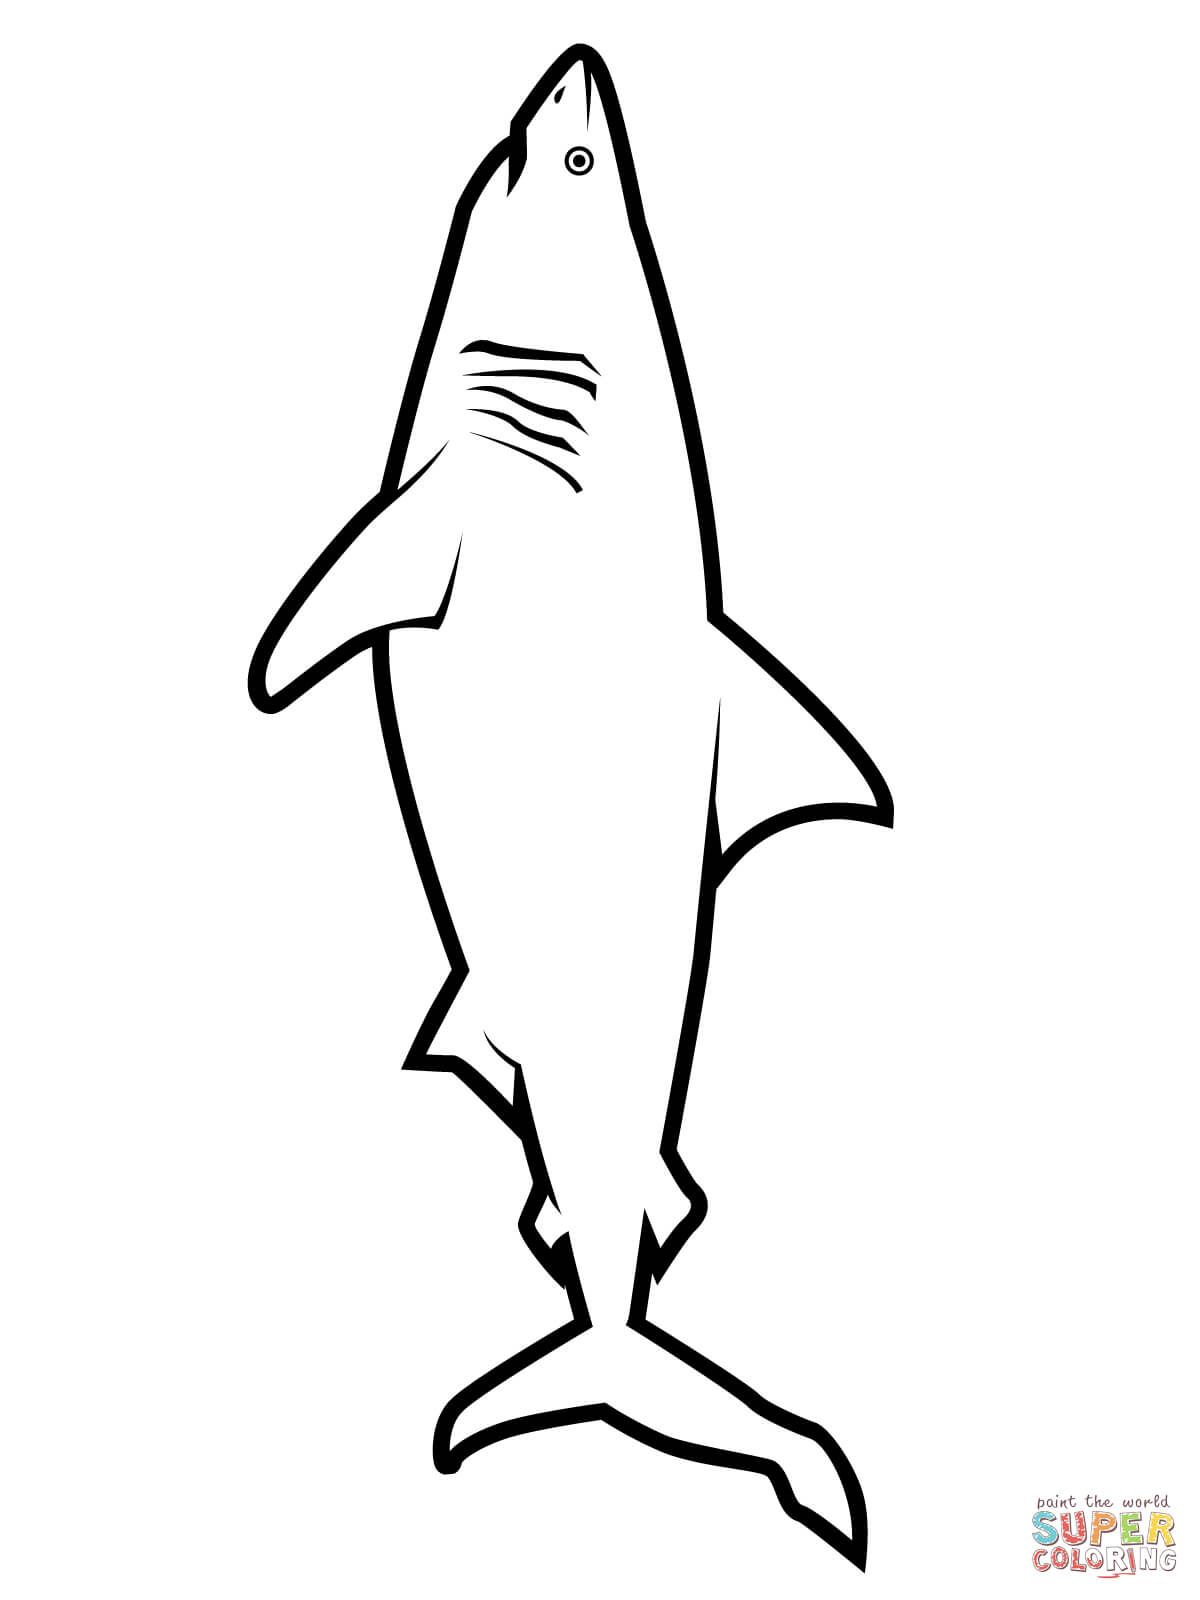 Realistic Great White Shark Coloring Page | Free Printable Coloring - Free Printable Shark Coloring Pages